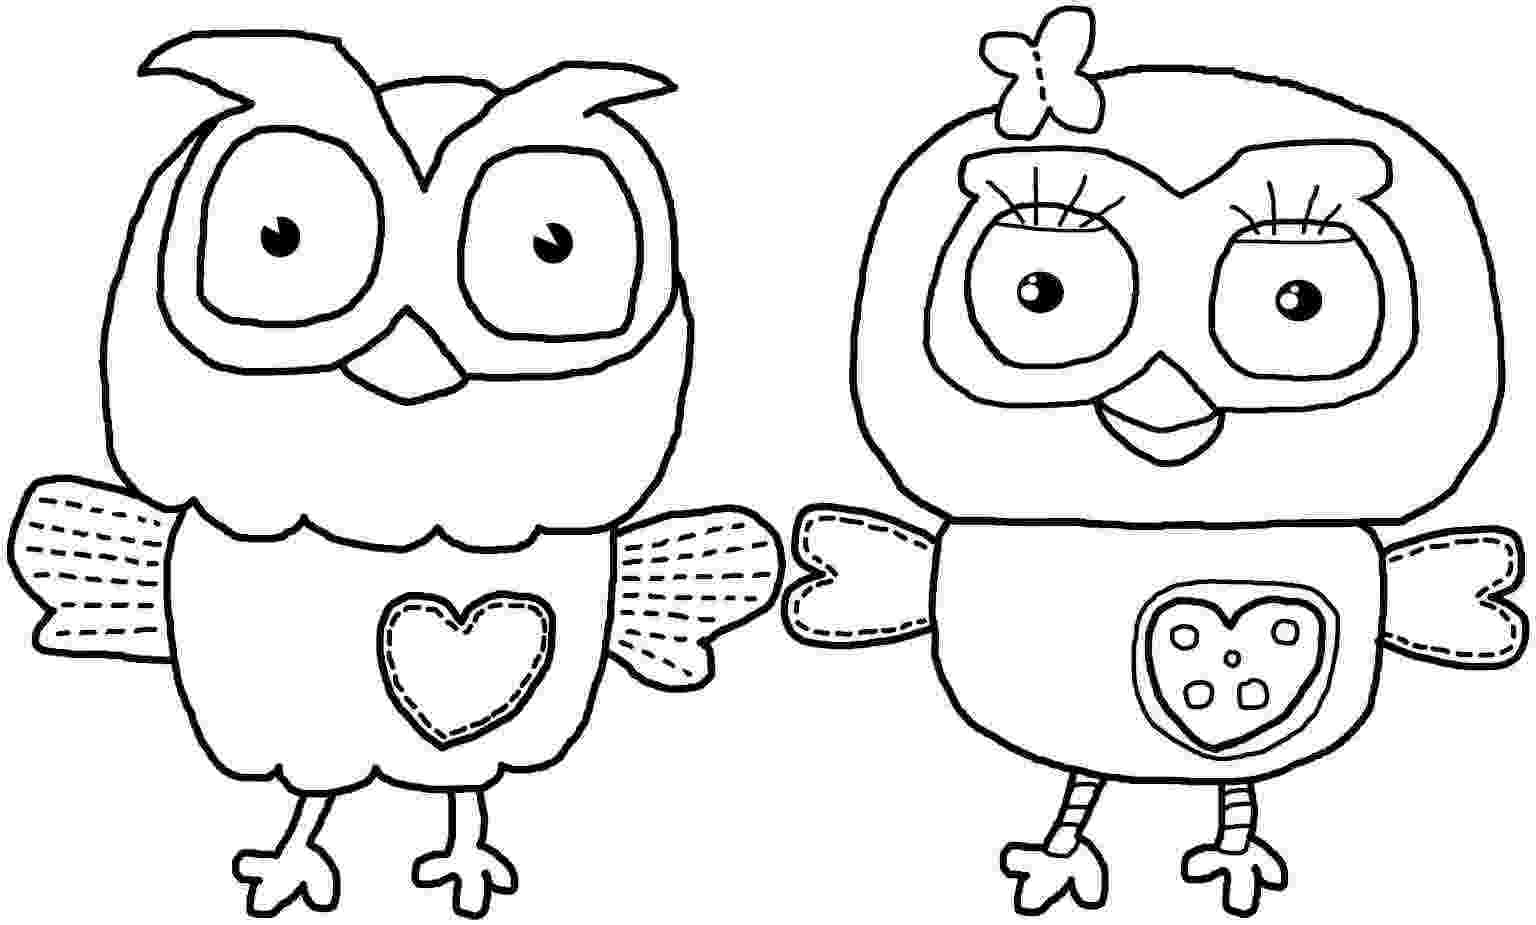 printable coloring pages for girls 10 and up coloring pages for girls 10 and up coloring home and girls printable up coloring 10 pages for